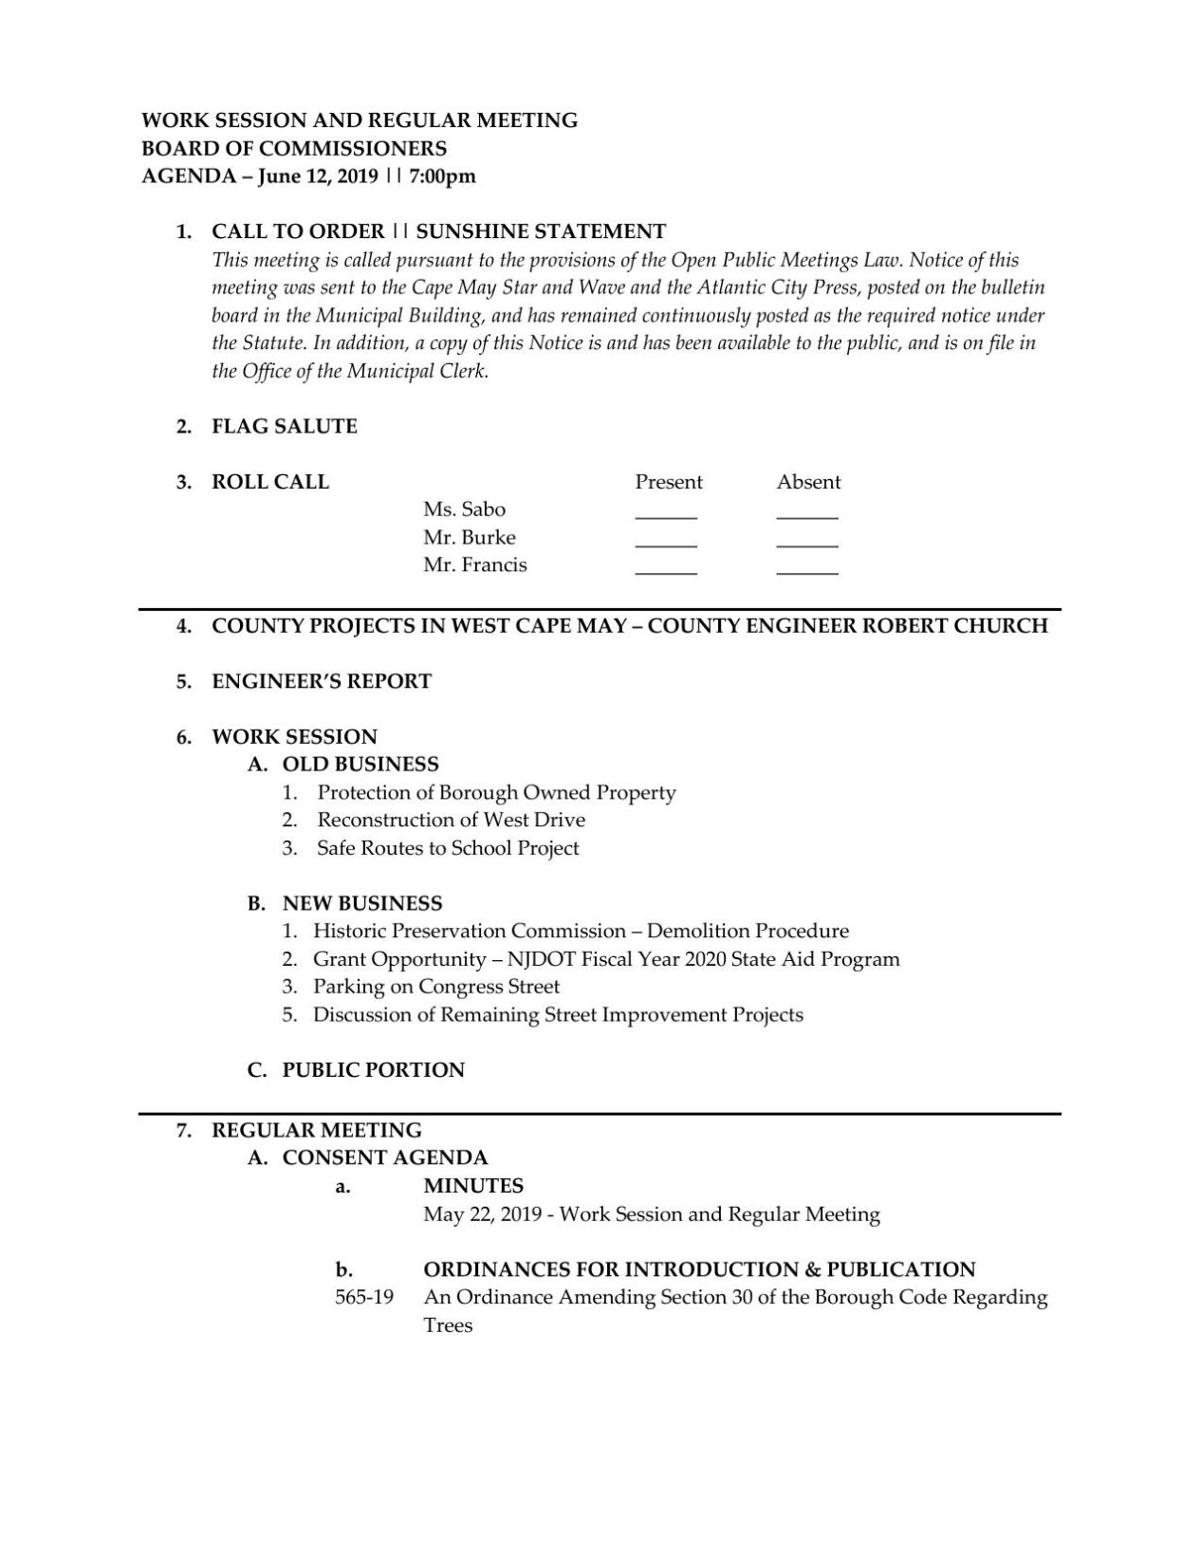 West Cape May Board of Commissioners Agenda June 12, 2019